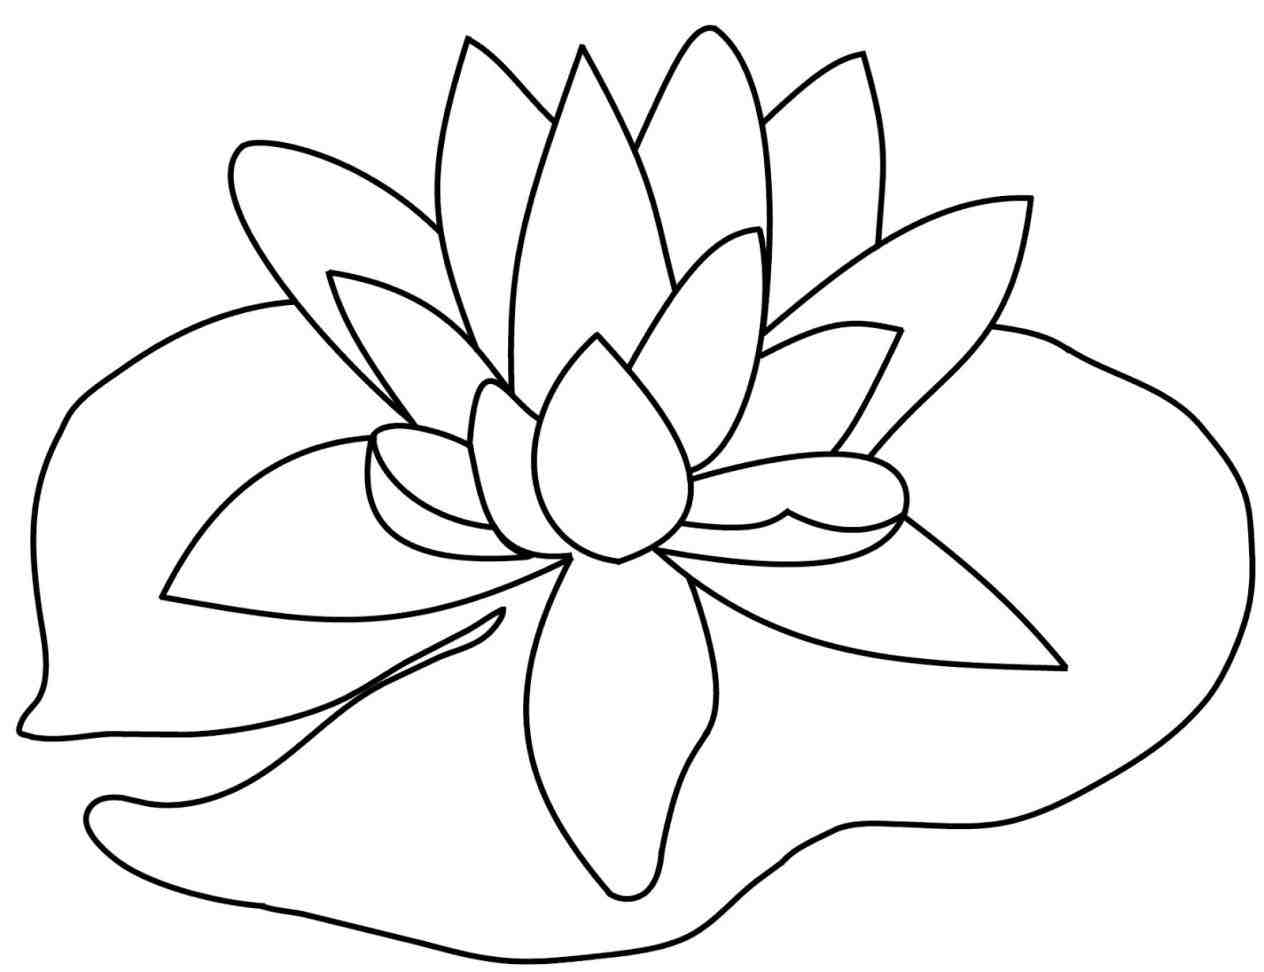 65fac9bd2c Quality Detailed Images Lilly Pad Water Lilly Lotus